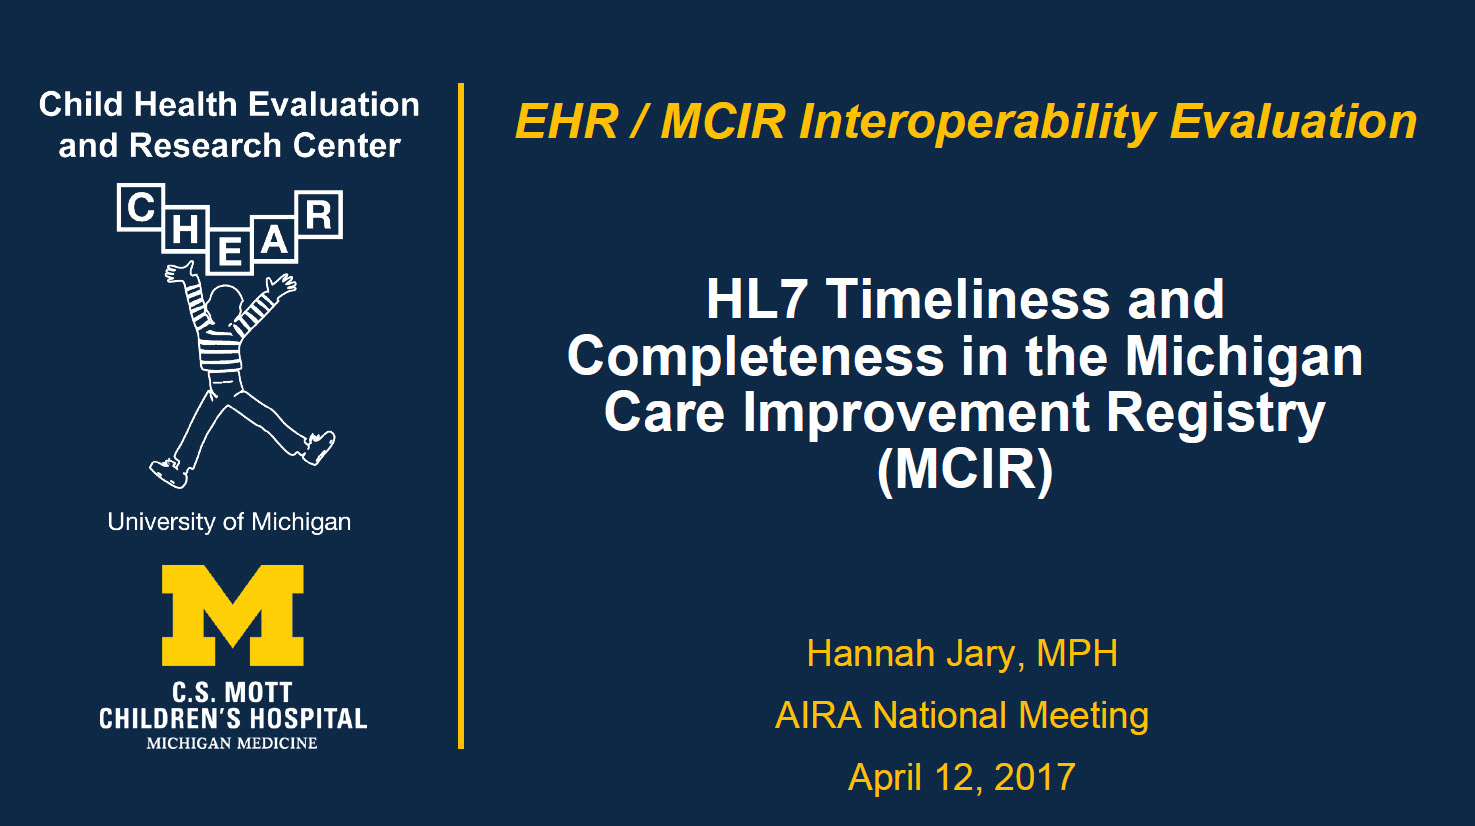 HL7 Timeliness and Completeness in the Michigan Care Improvement Registry (MCIR)